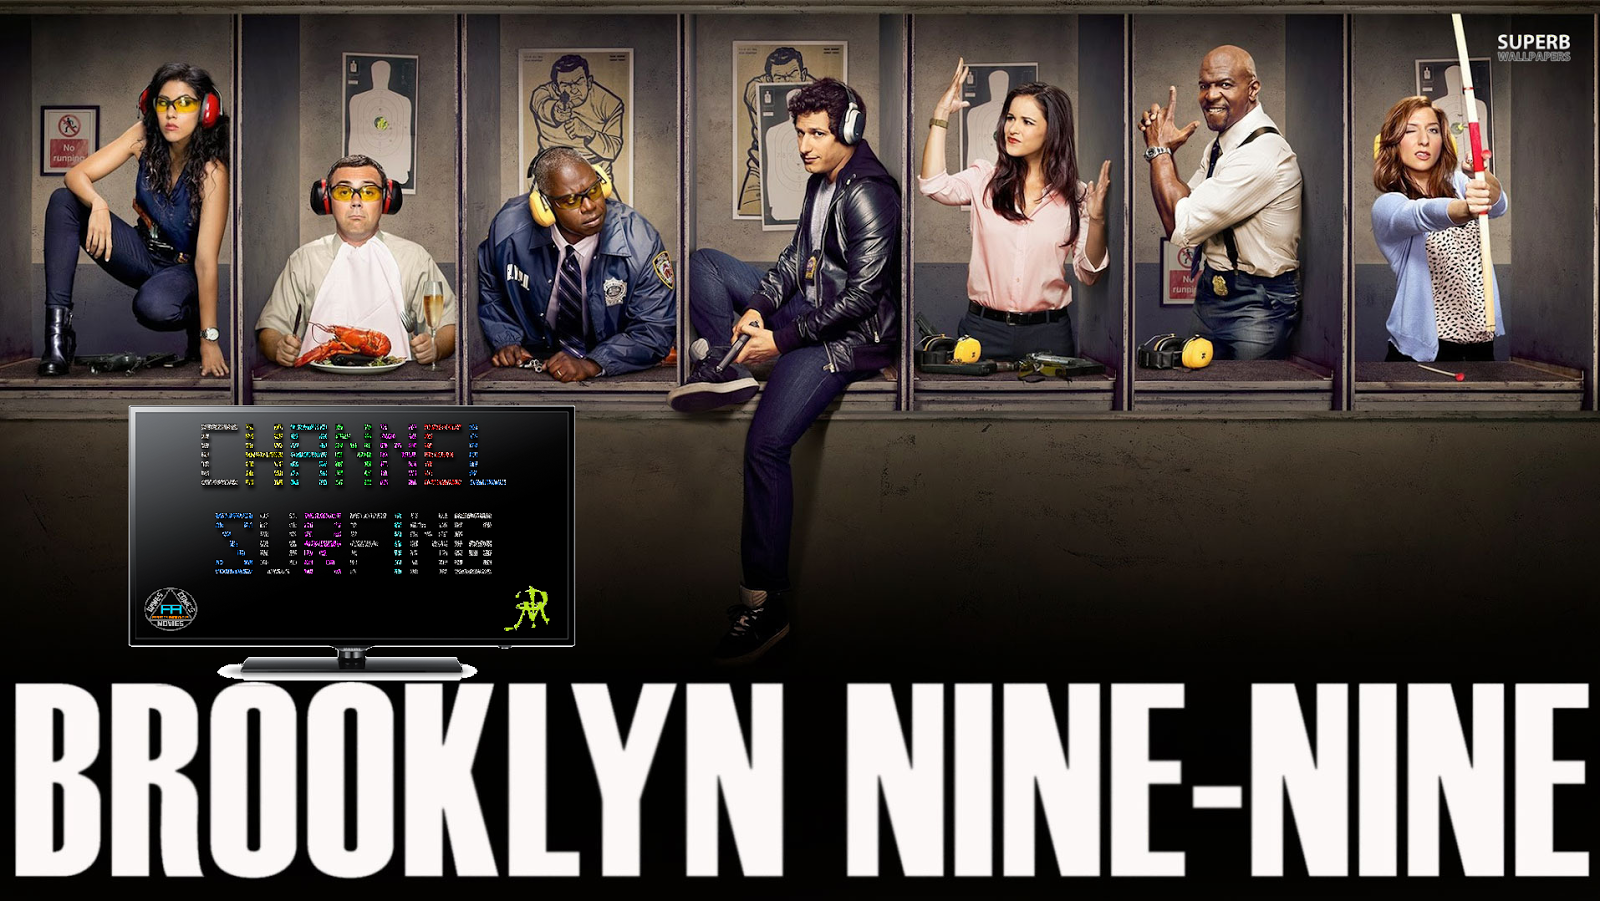 Brooklyn Nine Nine fourth episode free online